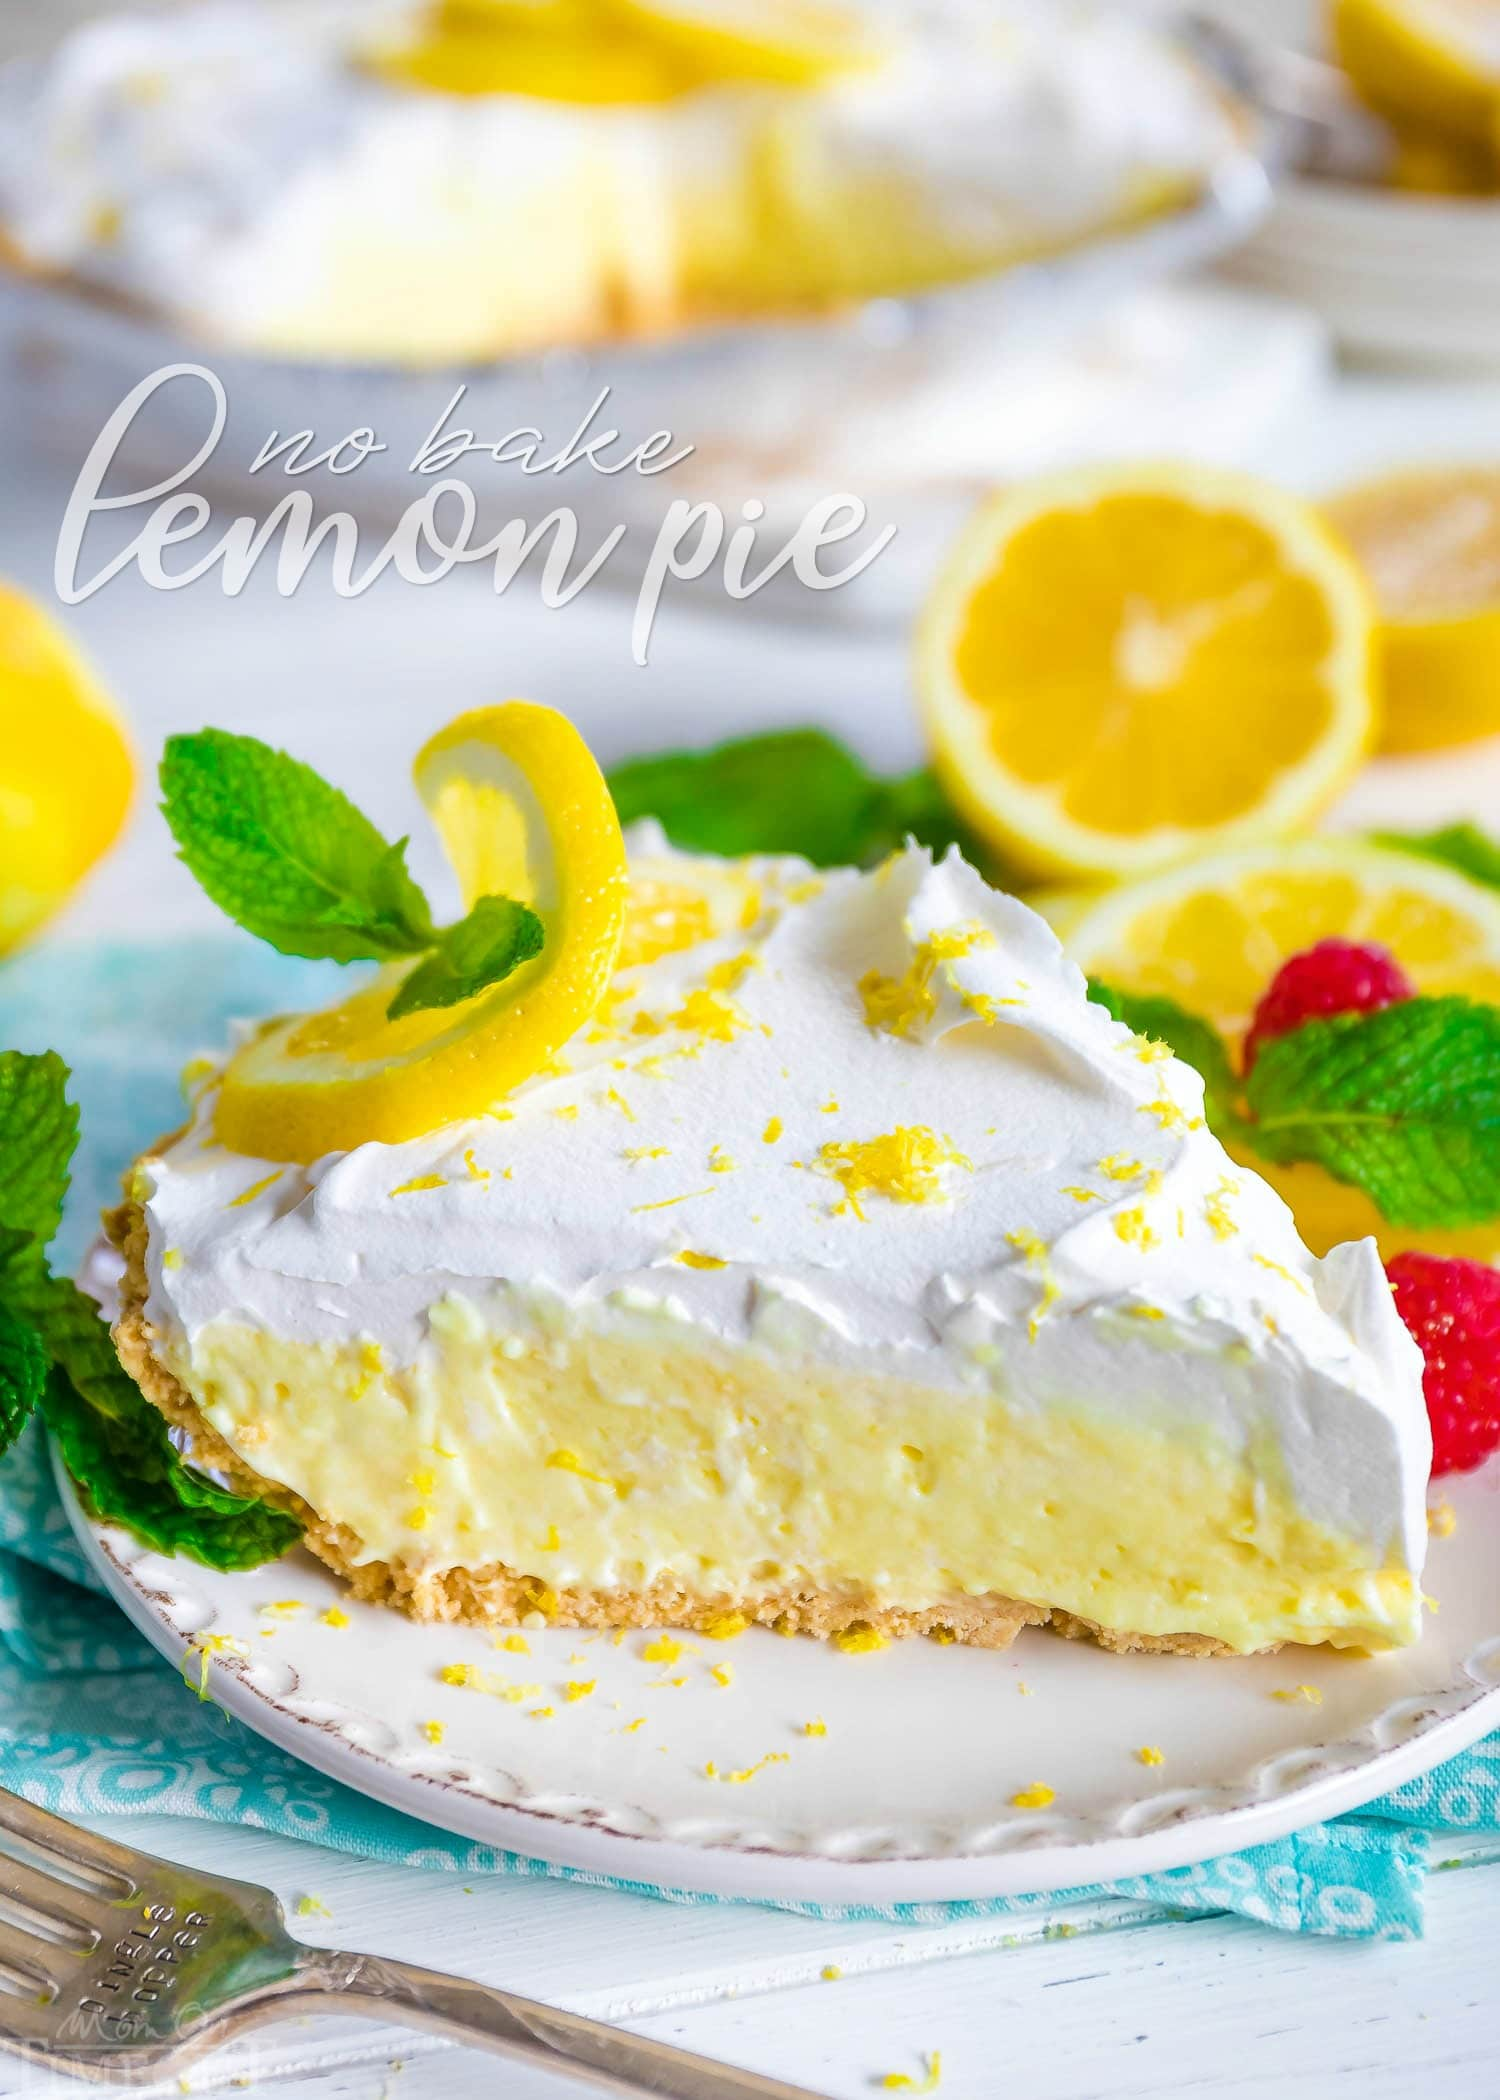 lemon pie garnished with lemon slice and fresh mint with title overlay at top of image.